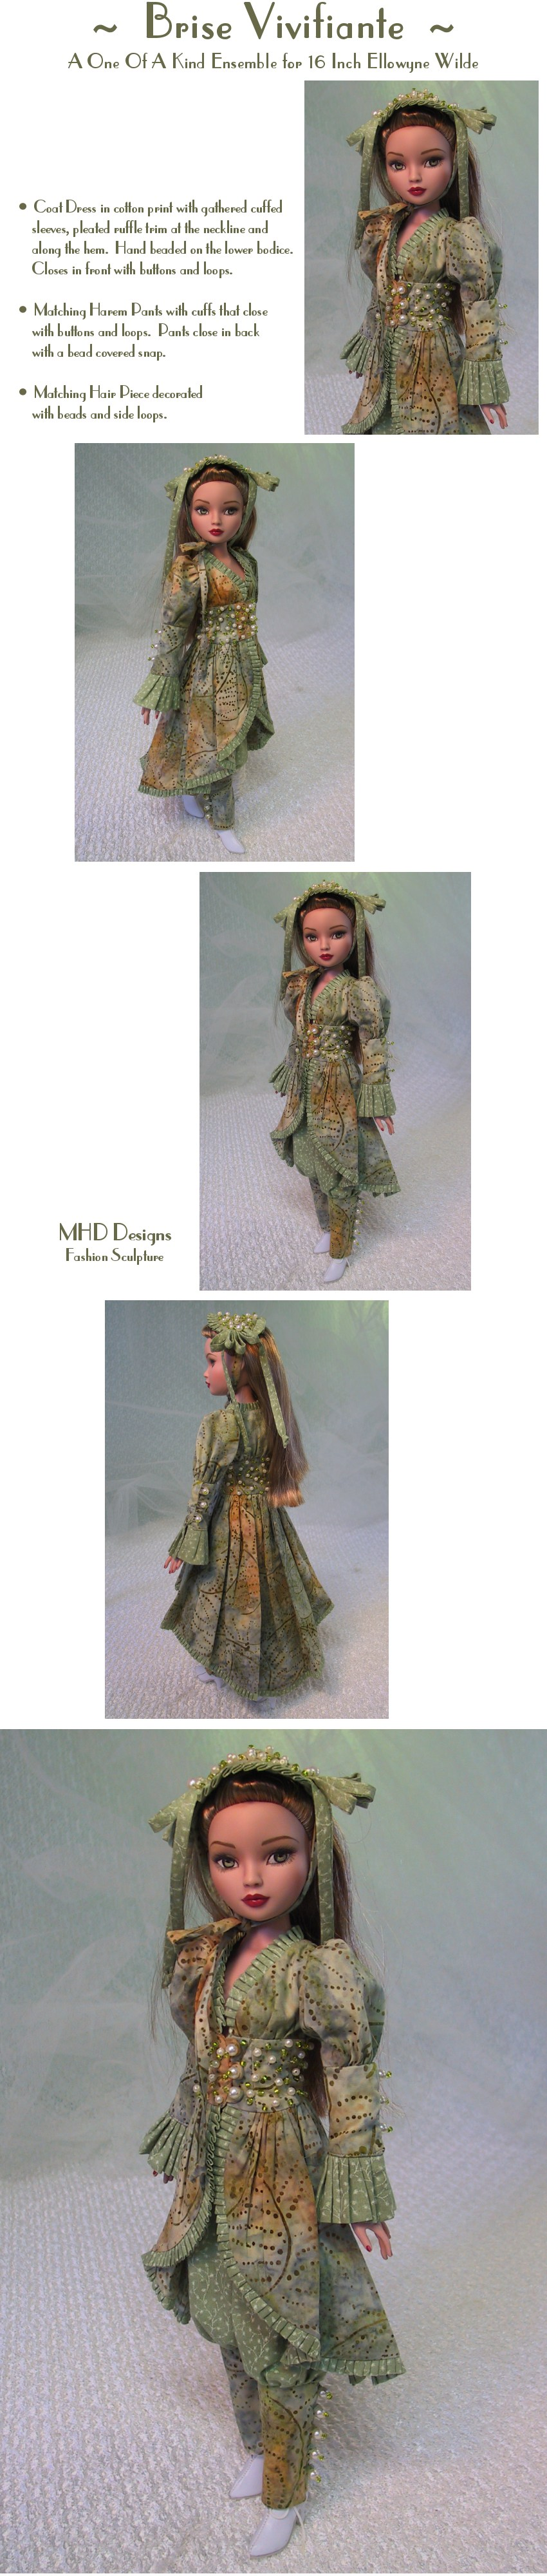 Invigorating Breeze  - a One Of A Kind Ensemble by MHD Designs